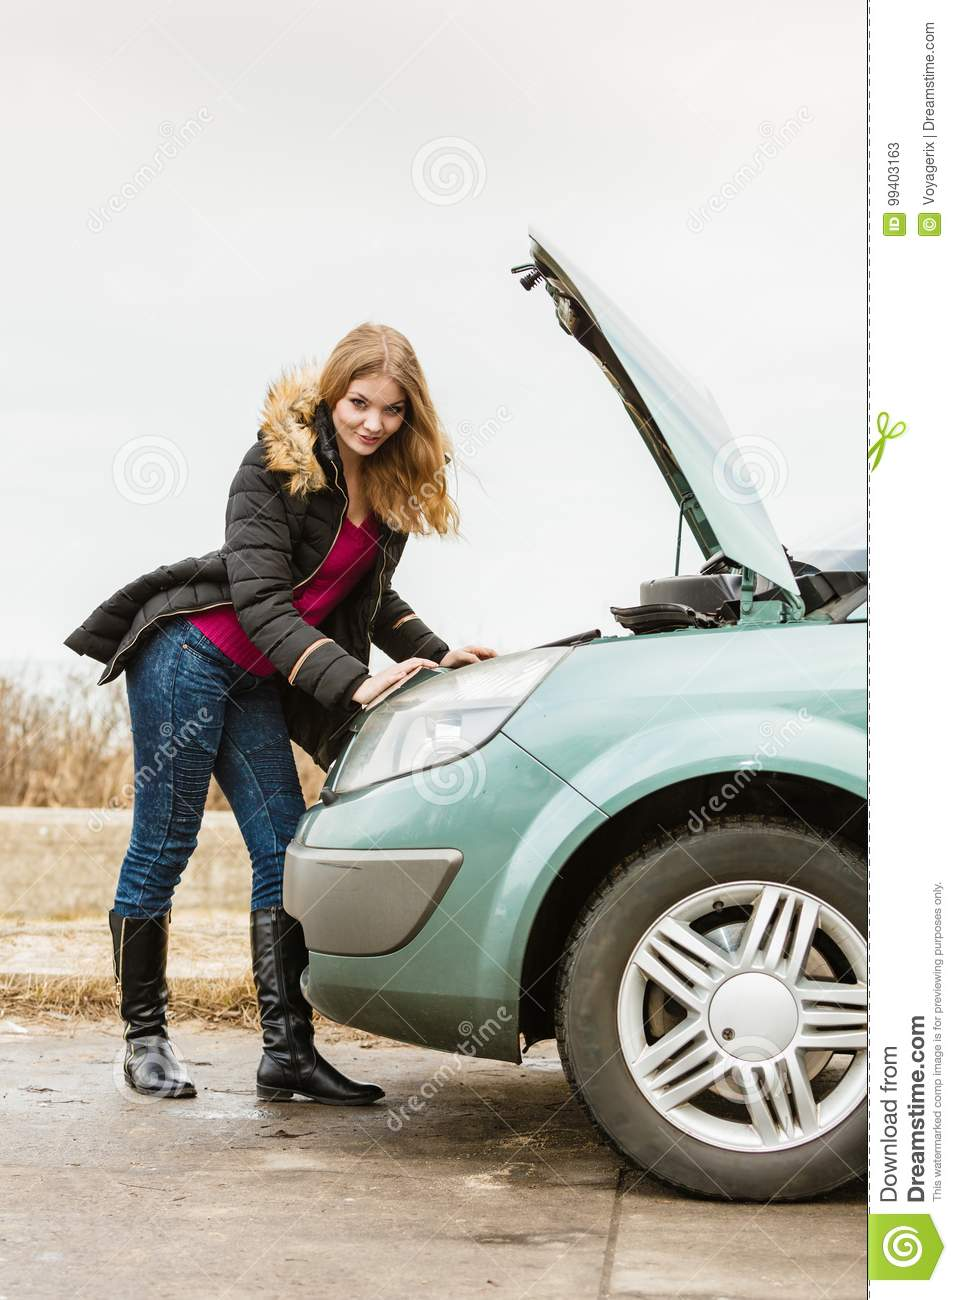 Blonde Woman And Broken Down Car On Road Stock Image - Image of ...